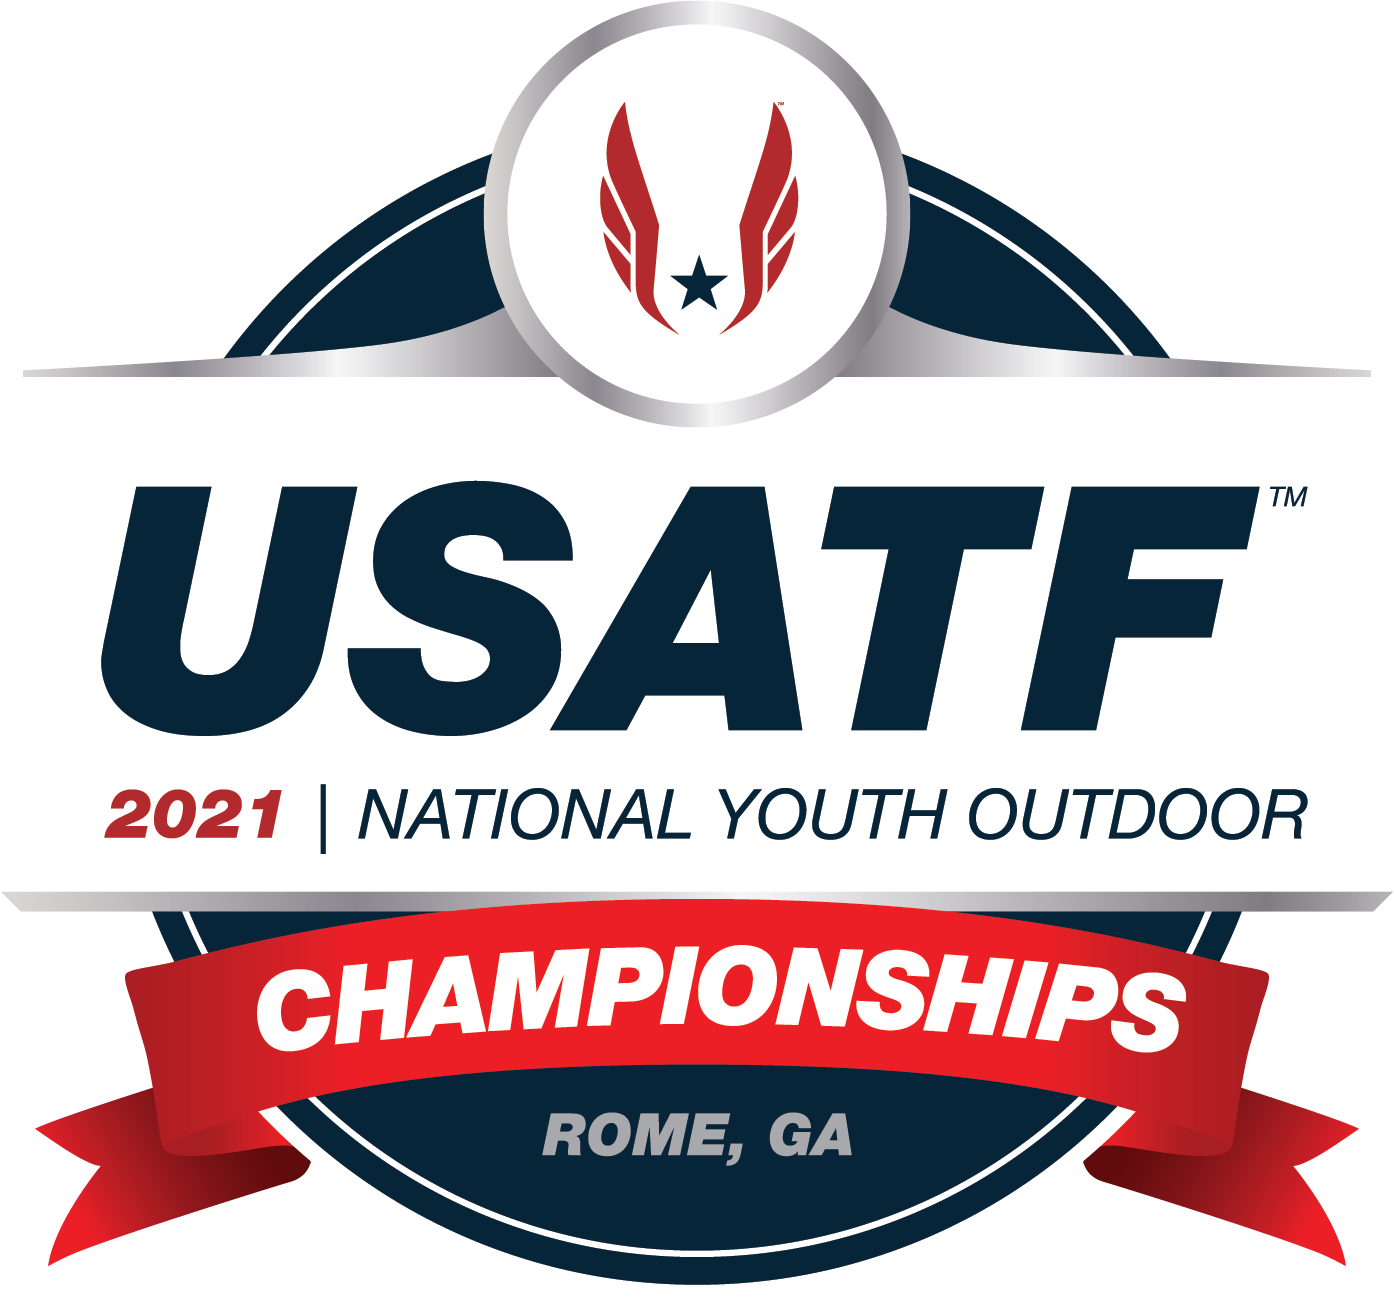 National Youth Outdoor Championships